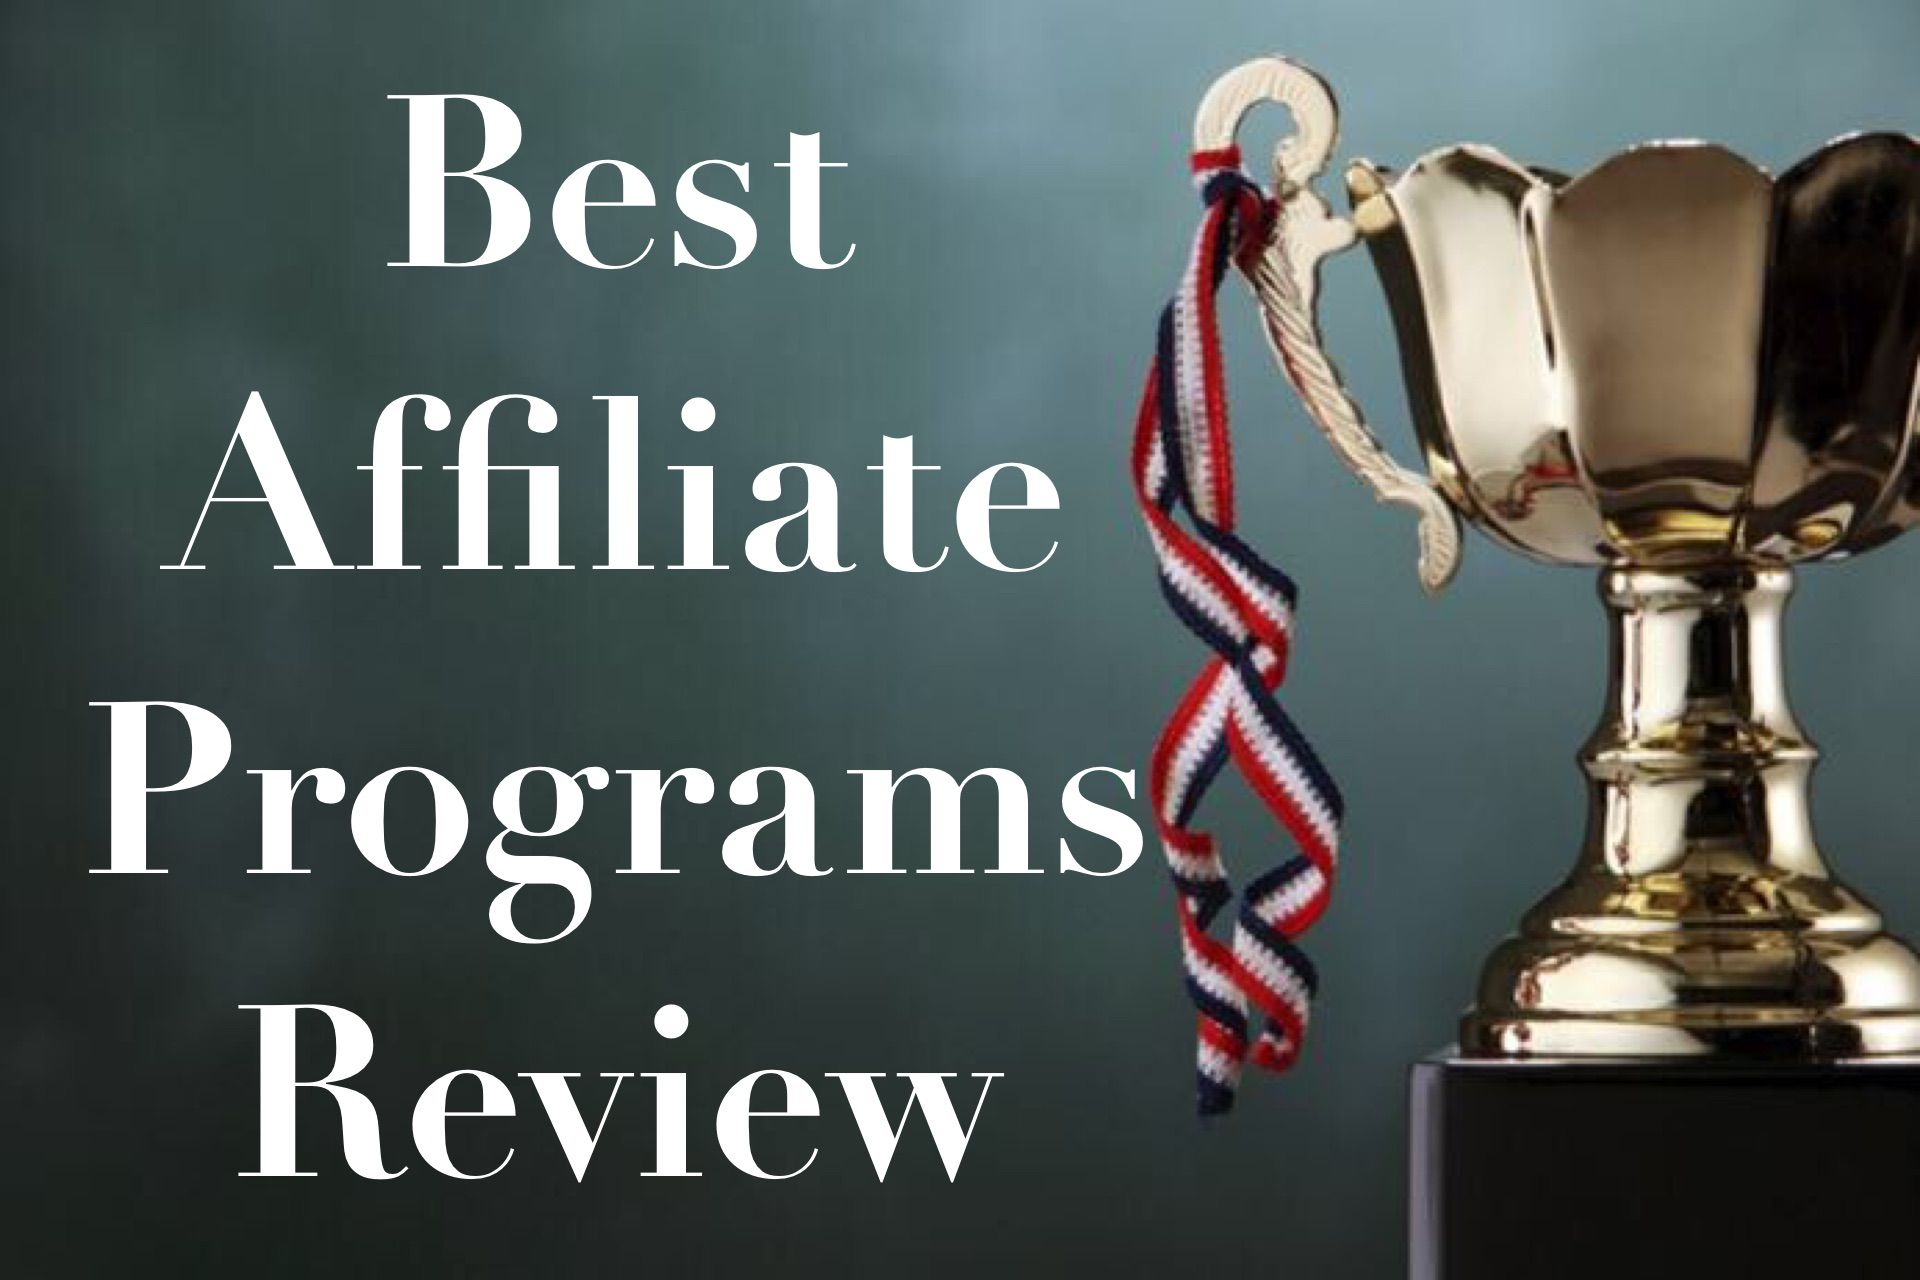 http://PureResiduals.com Best Affiliate Programs - Create Monthly Residual Income #affiliateMarketing #affiliate #OnlineMarketing #SmallBusiness #Marketing #Entreprenuer #Blogging #MakeMoney